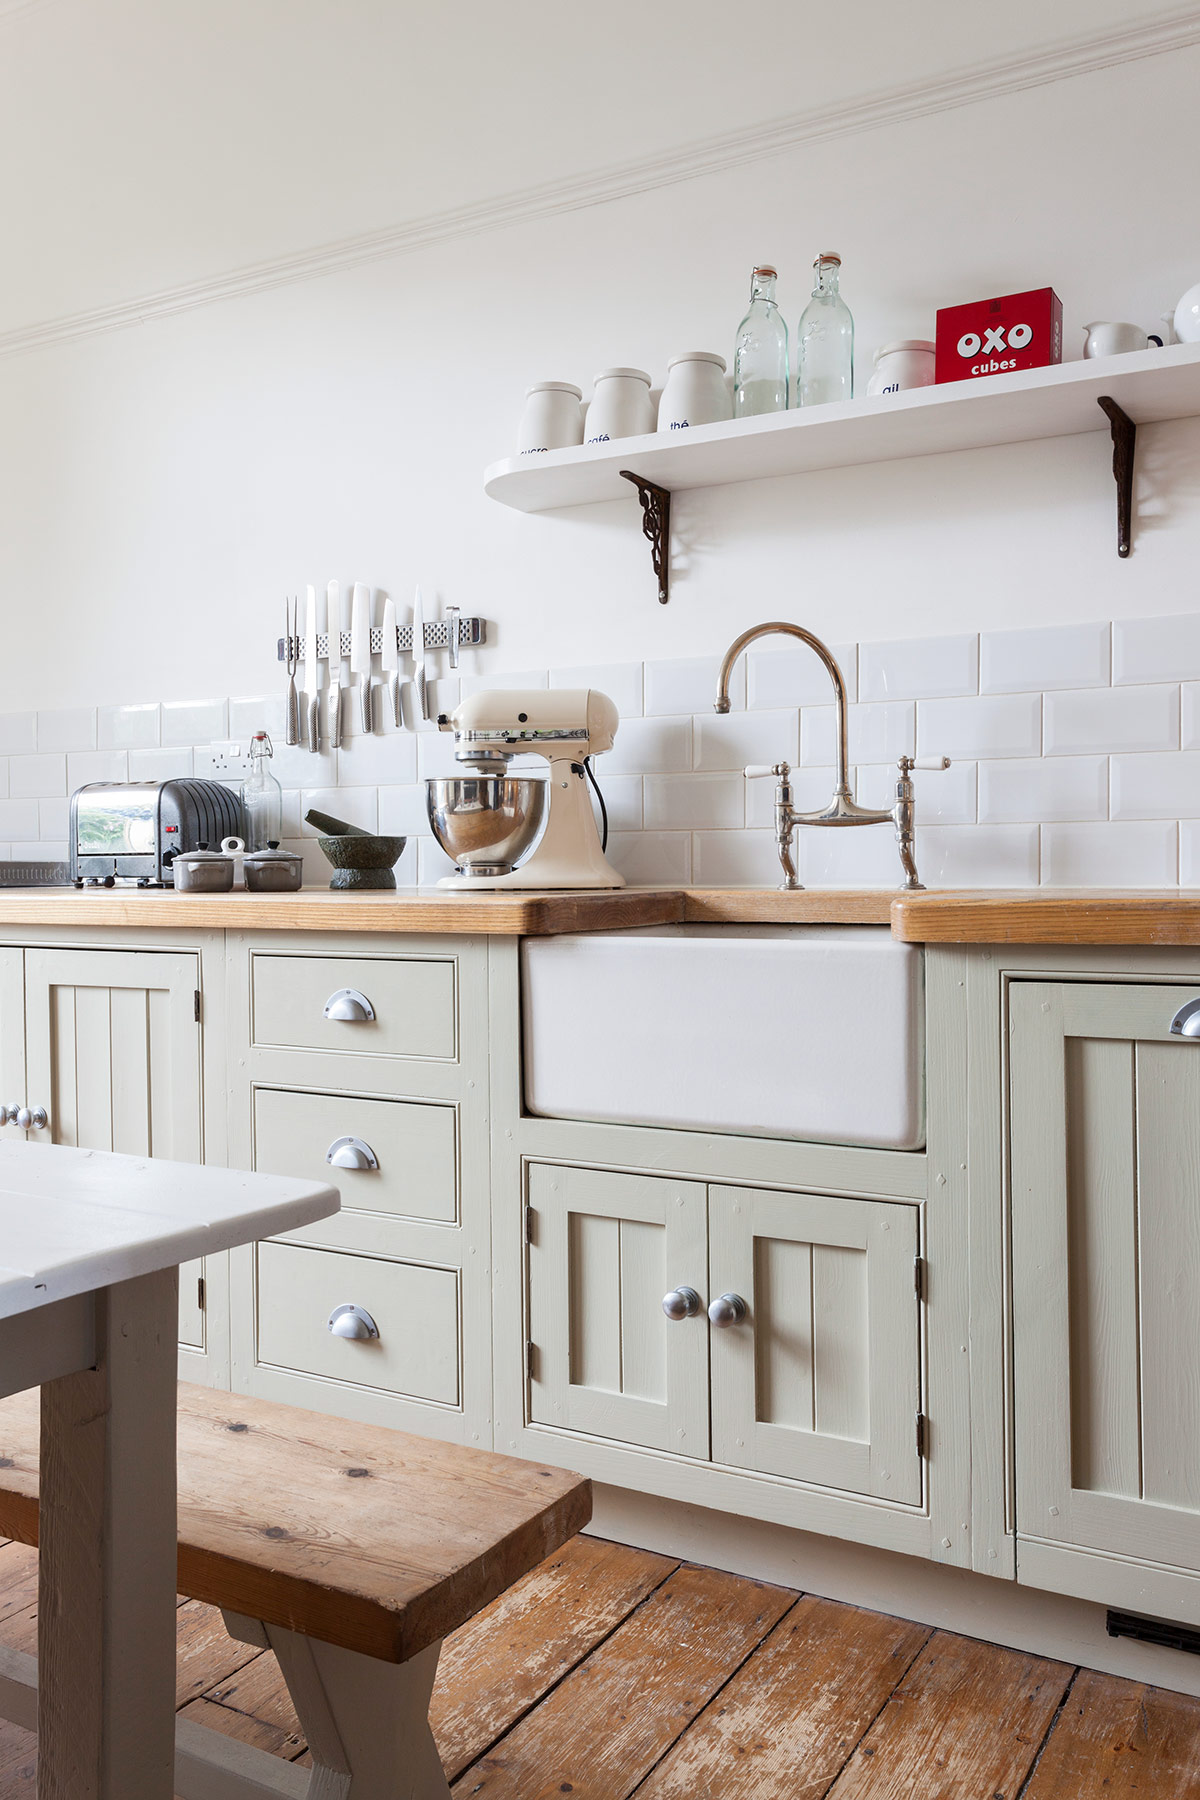 Small Kitchen Design Houzz: The Top Kitchen Trends Of 2018, According To Houzz